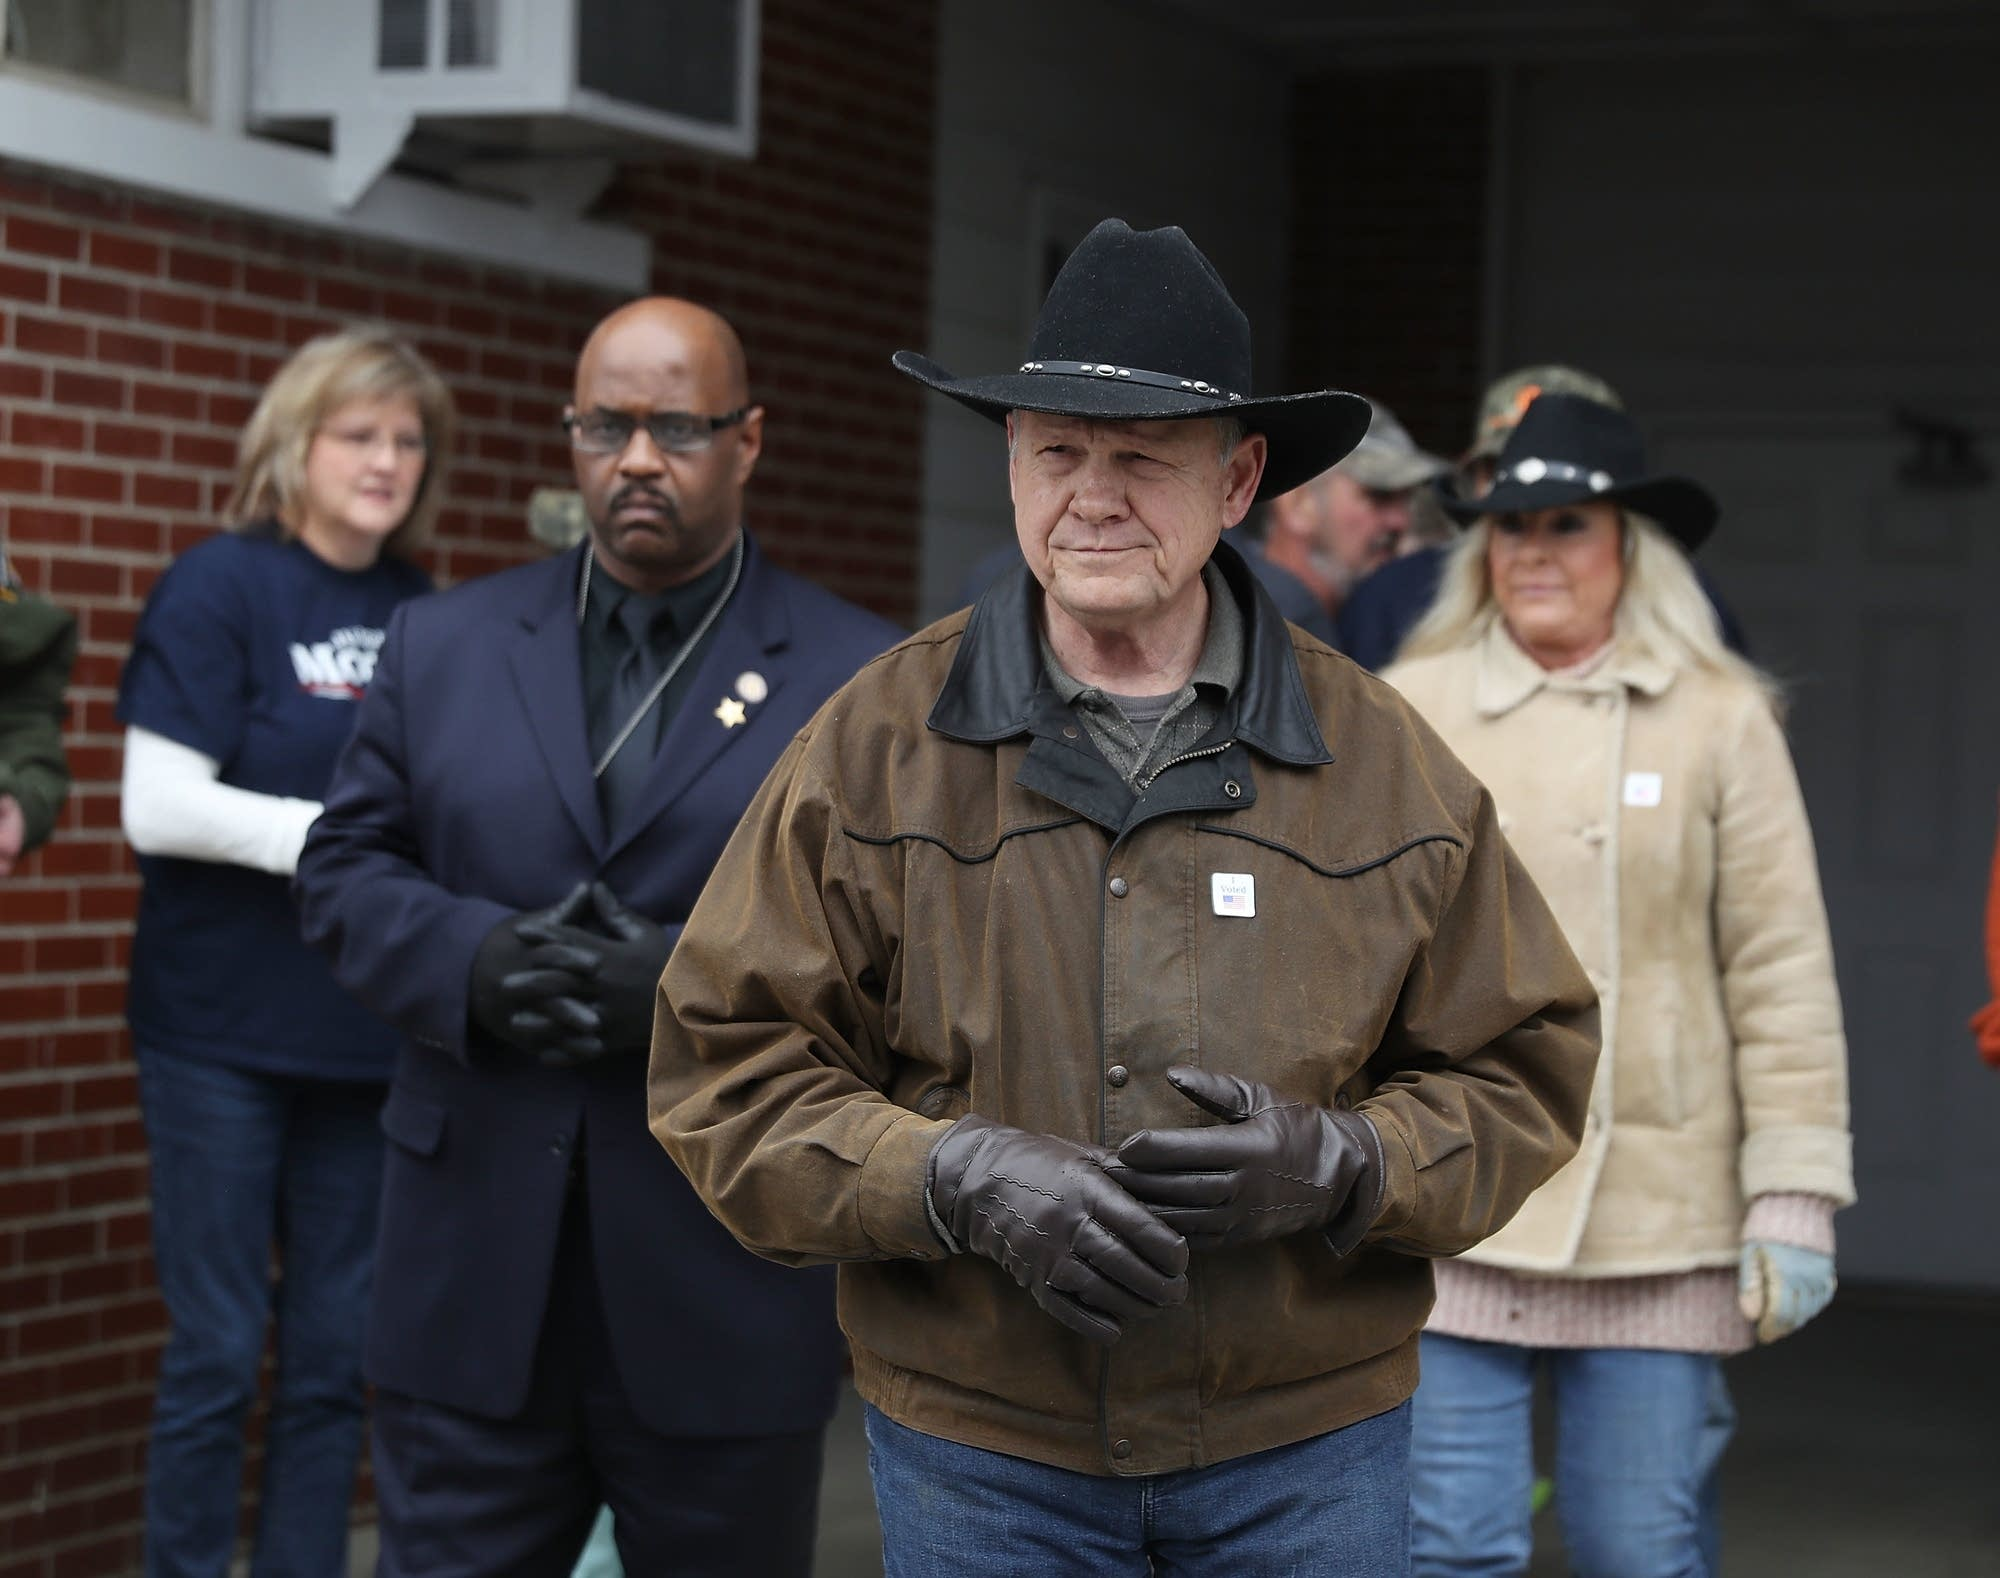 Republican Senatorial candidate Roy Moore exits after casting his vote